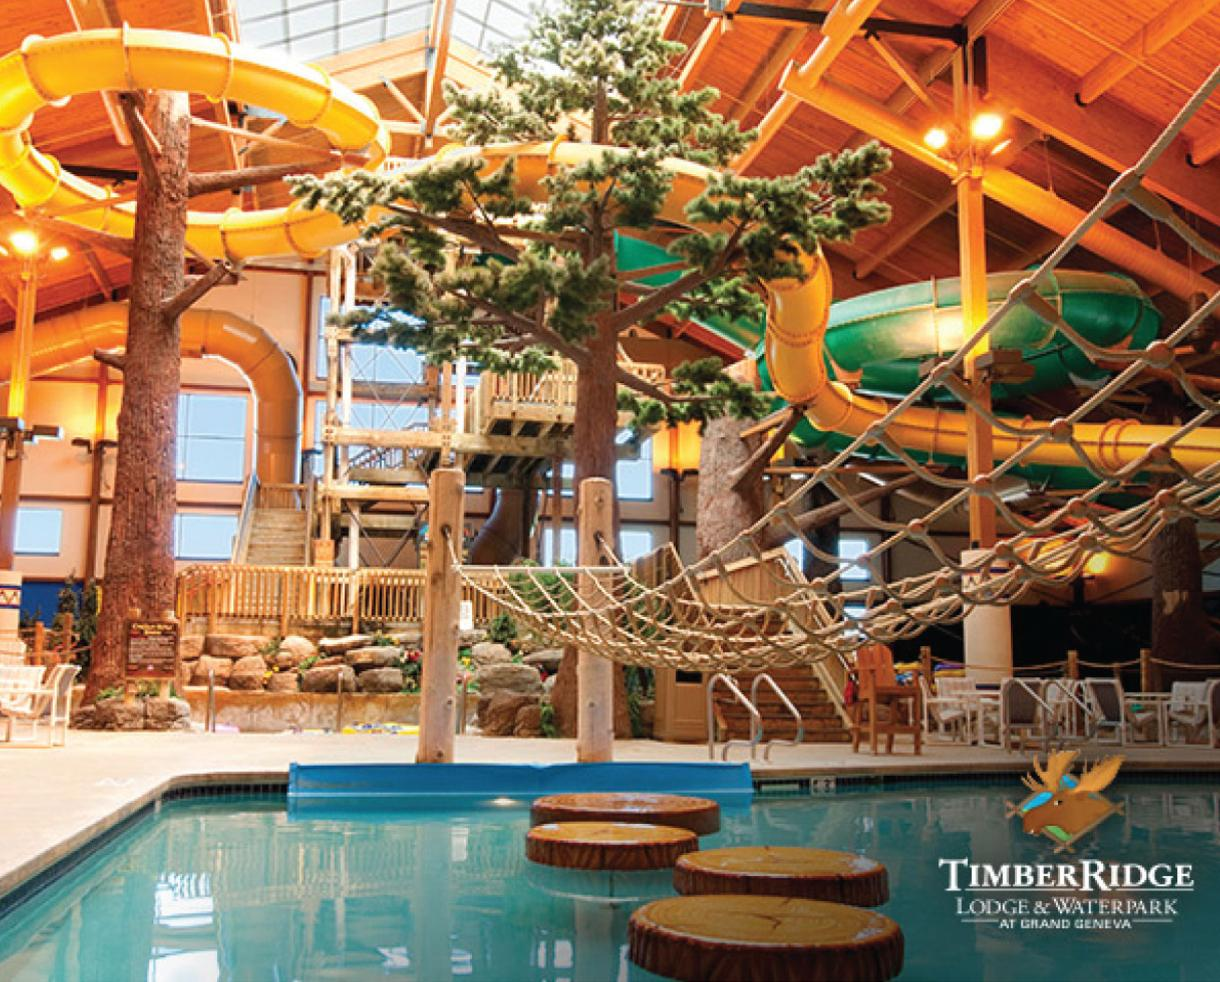 Deal  Timber Ridge Lodge   Waterpark  a0a34dce7e1c